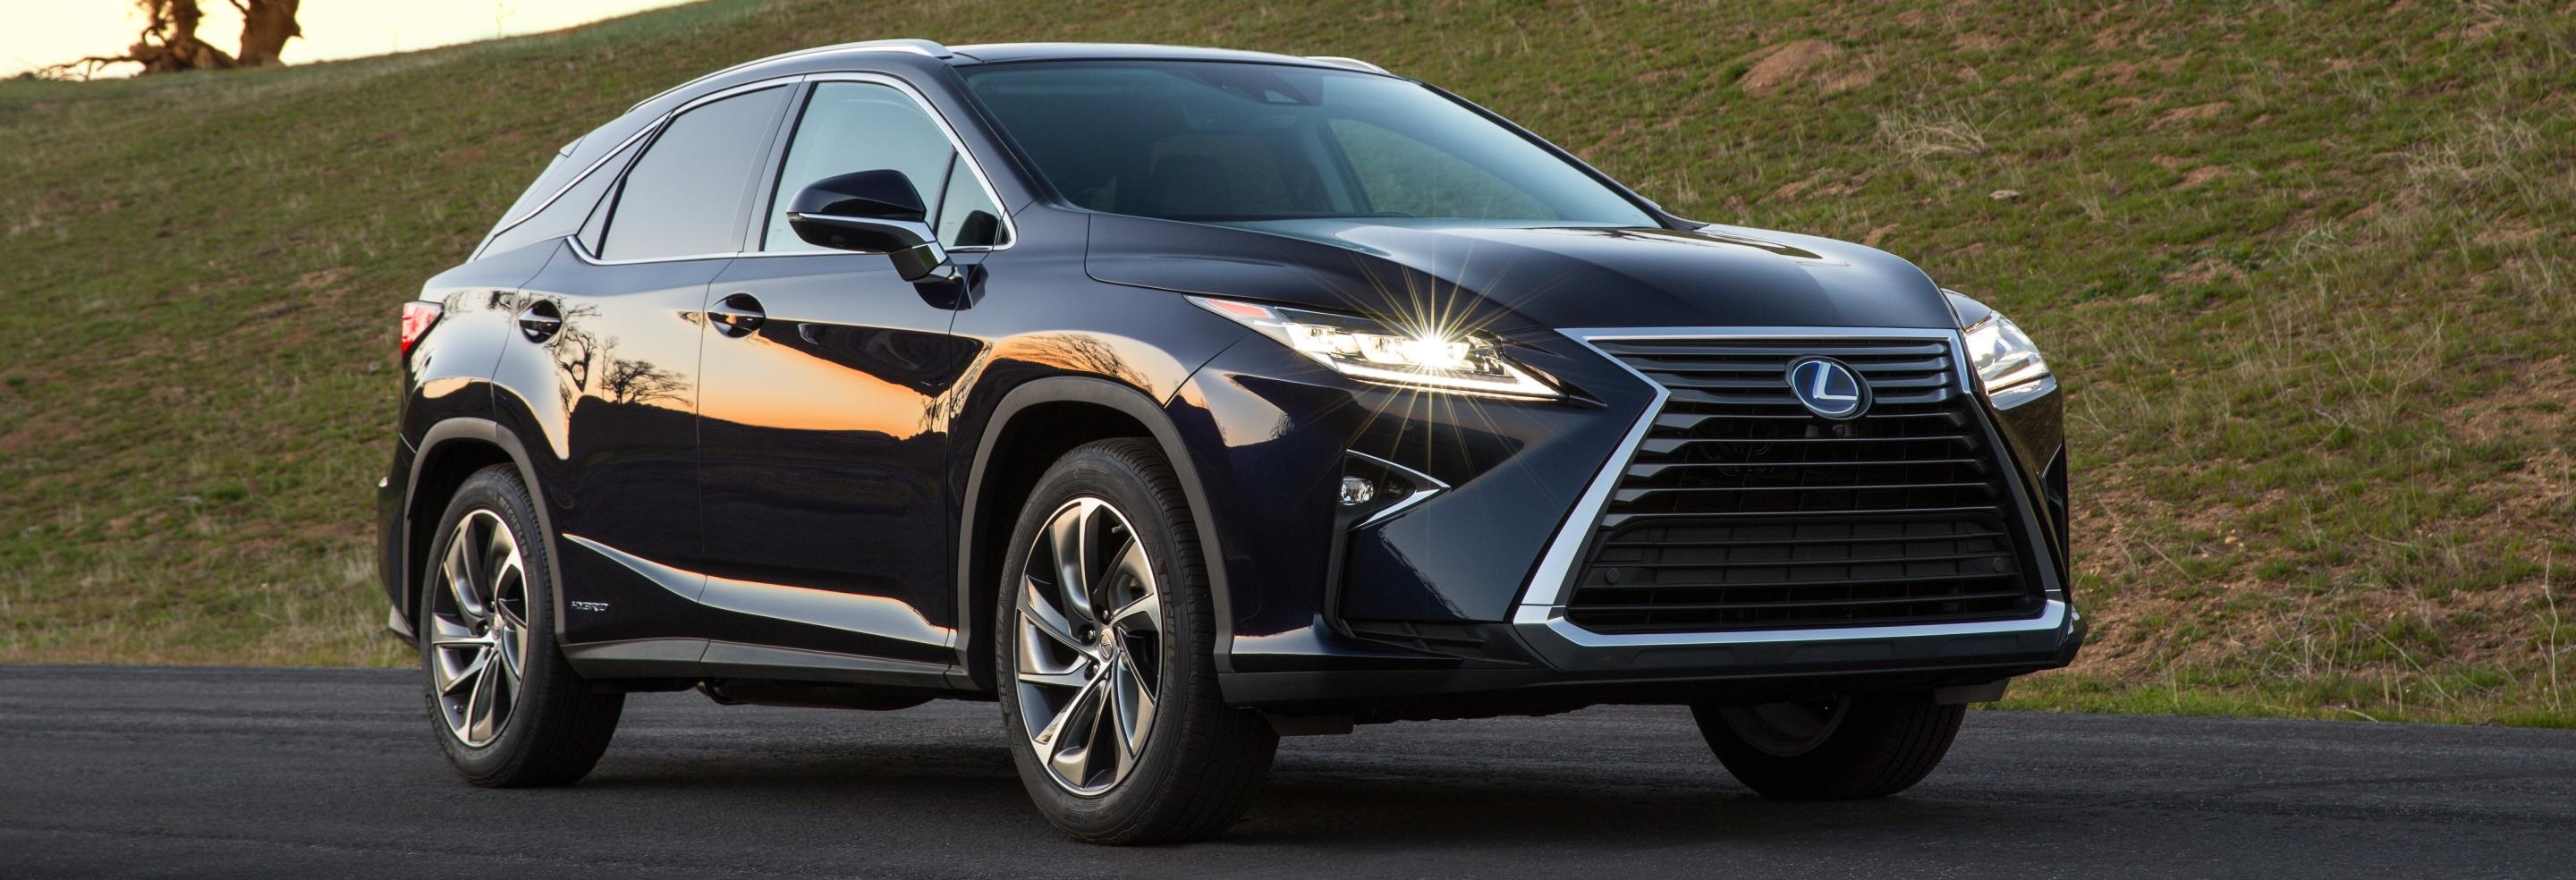 Lexus rx 450h lease deals Yield to maturity vs coupon rate